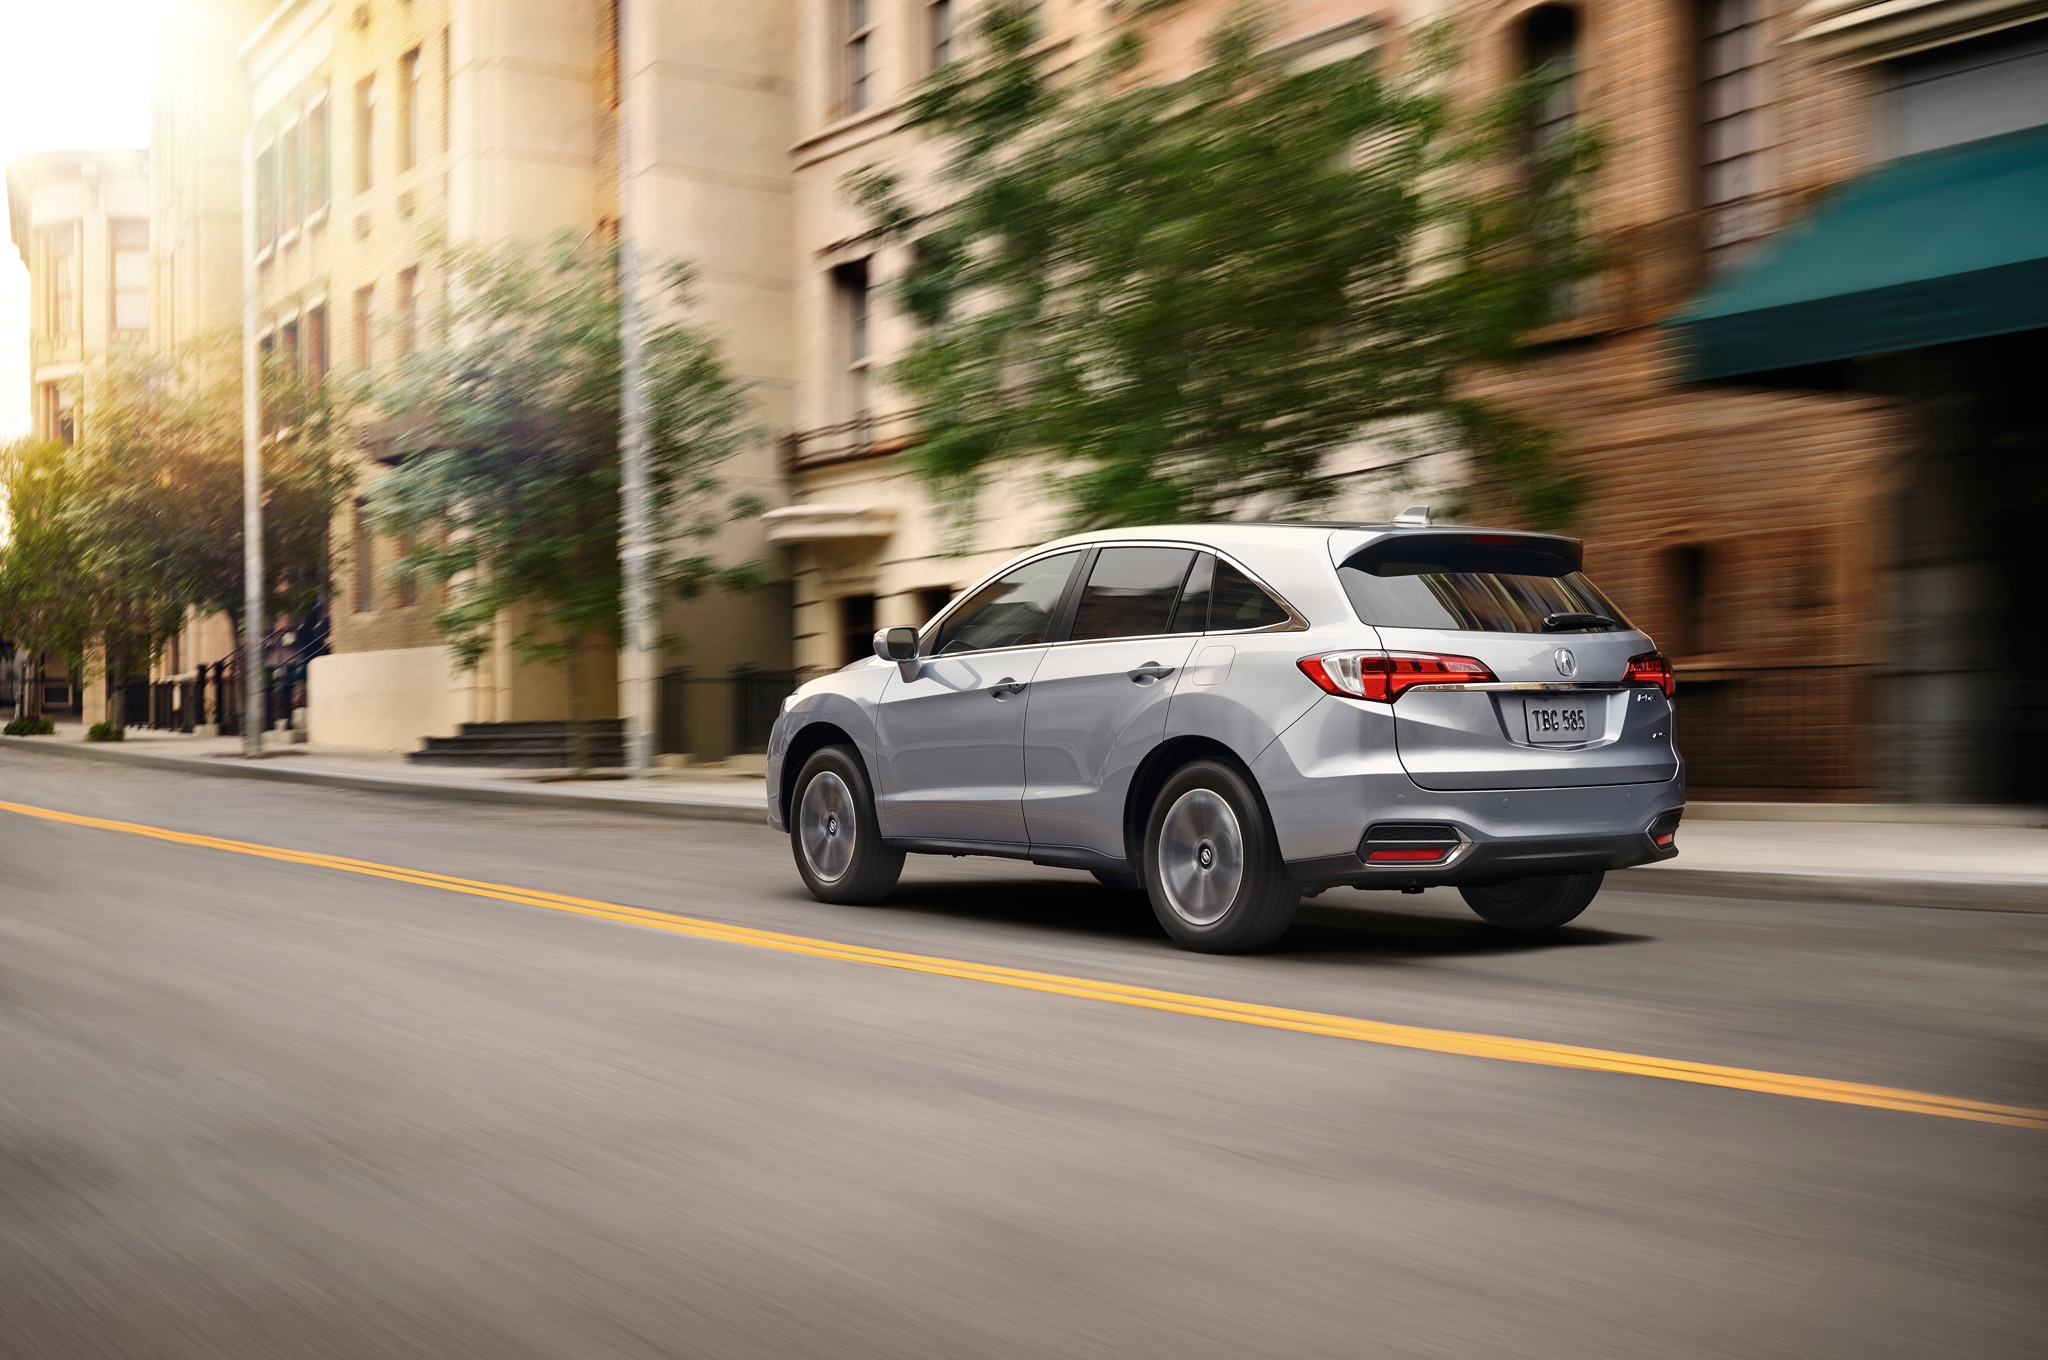 2017 Acura Rdx Advance Package >> Refreshed 2016 Acura RDX Price Rises, New Advance Package Available